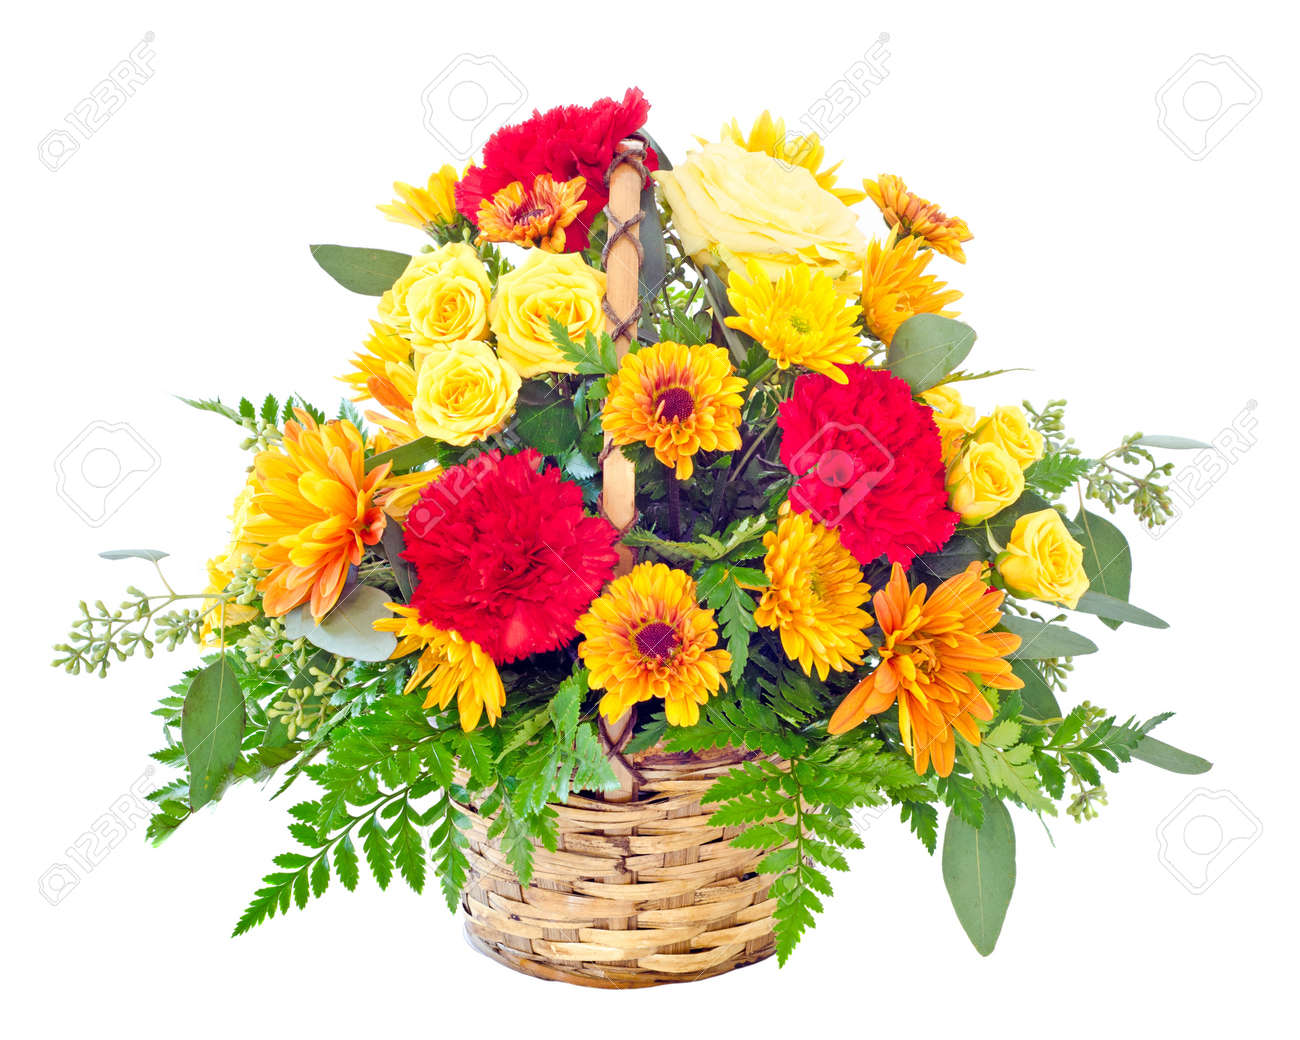 Flower arrangement with fall color carnations and daisies in stock flower arrangement with fall color carnations and daisies in basket stock photo 10997768 izmirmasajfo Choice Image